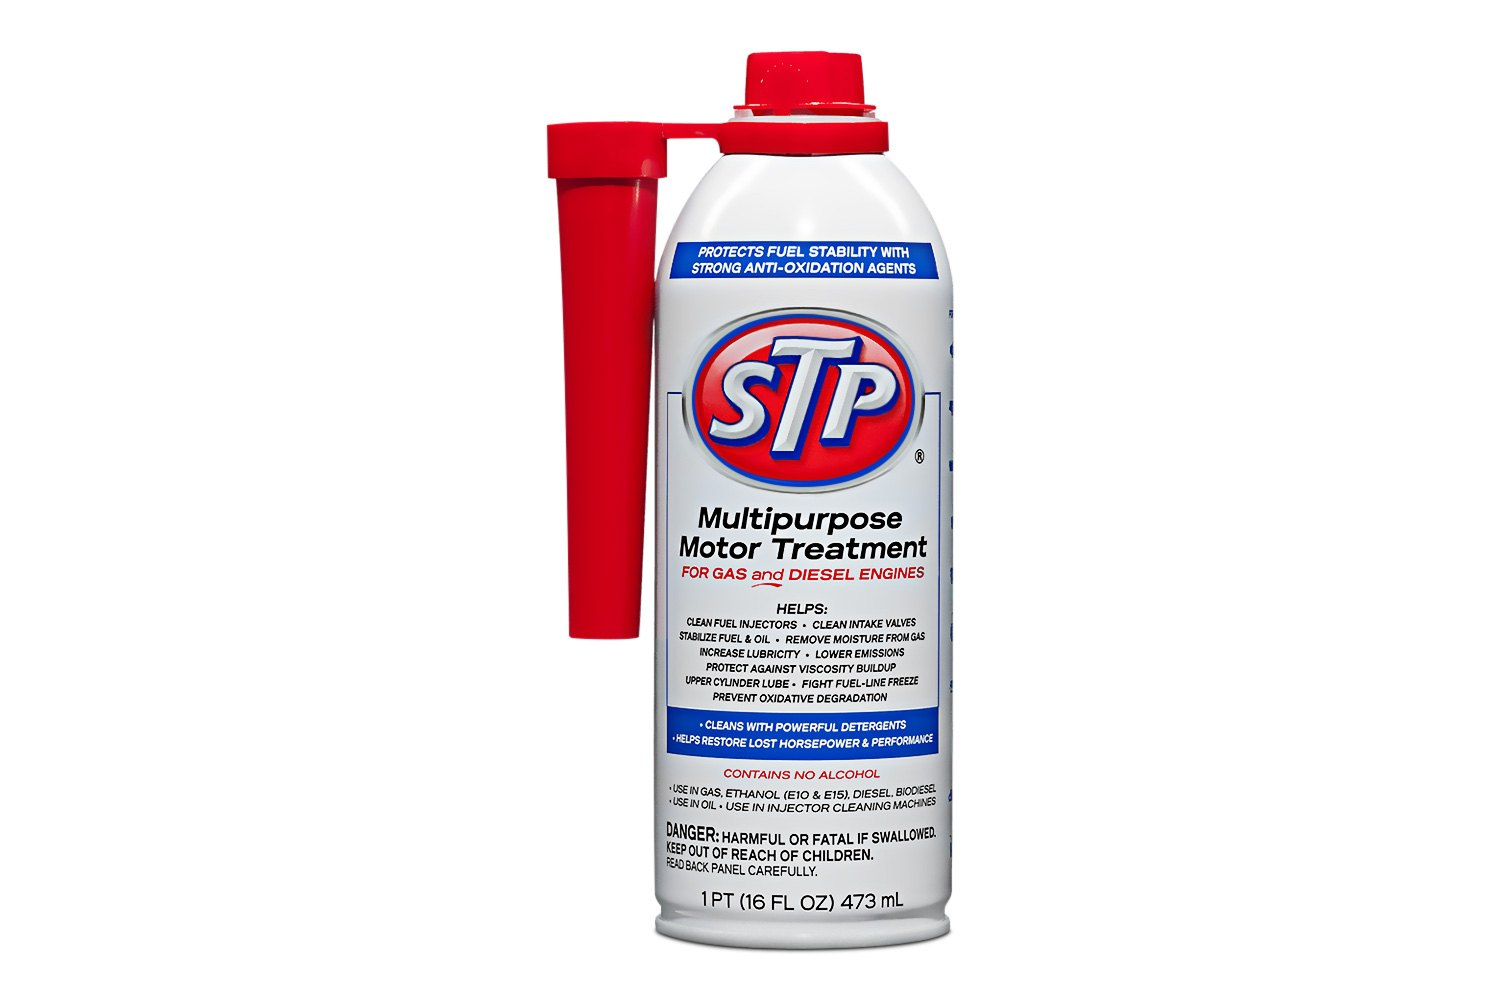 STP™ | Oil Treatment, Fuel Injector Cleaner, Additives